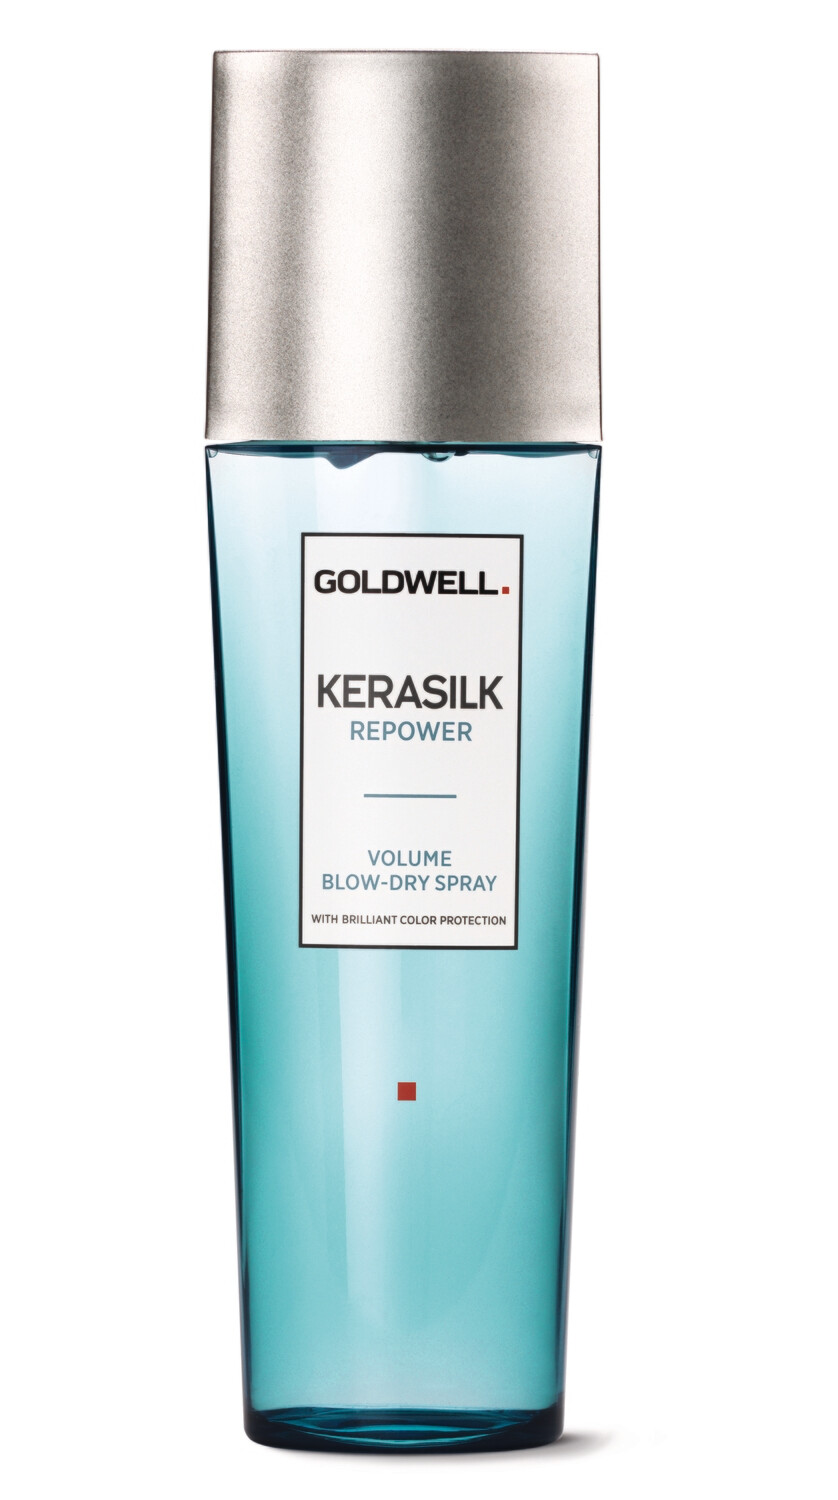 Goldwell Kerasilk Re Power Volume  Blow Dry Sprayer 125 ml